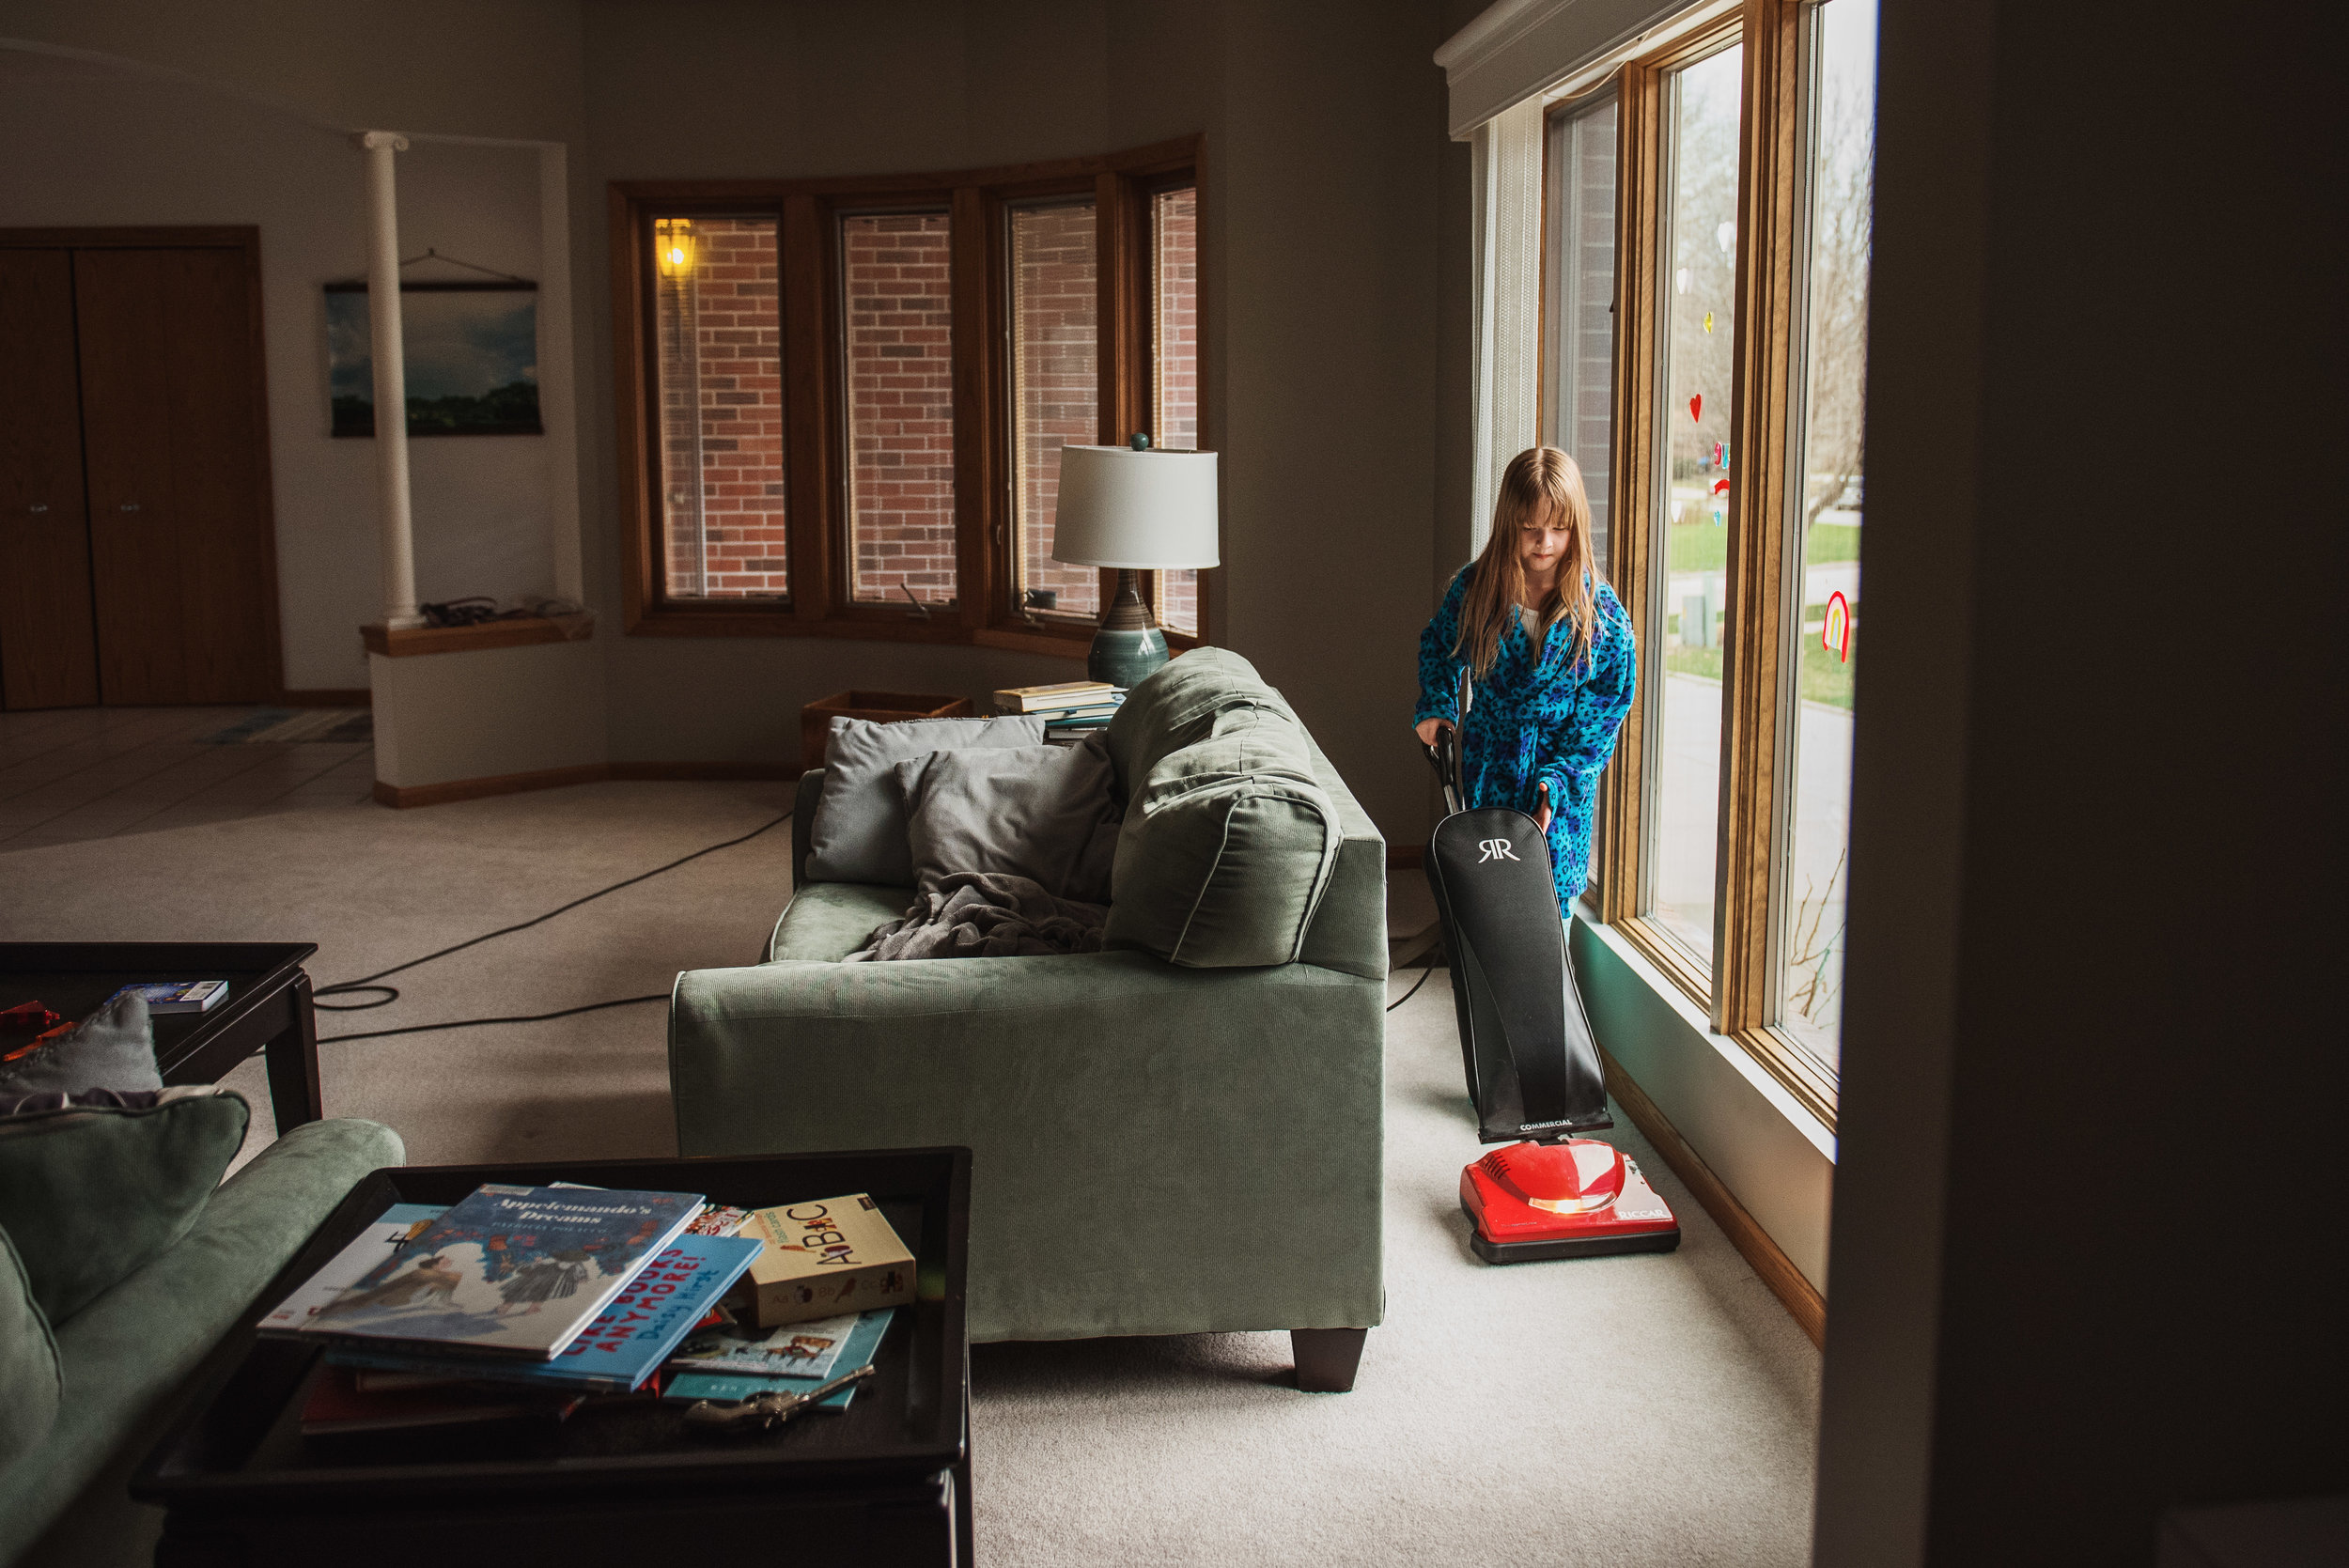 little girl vacuuming a living room_.jpg